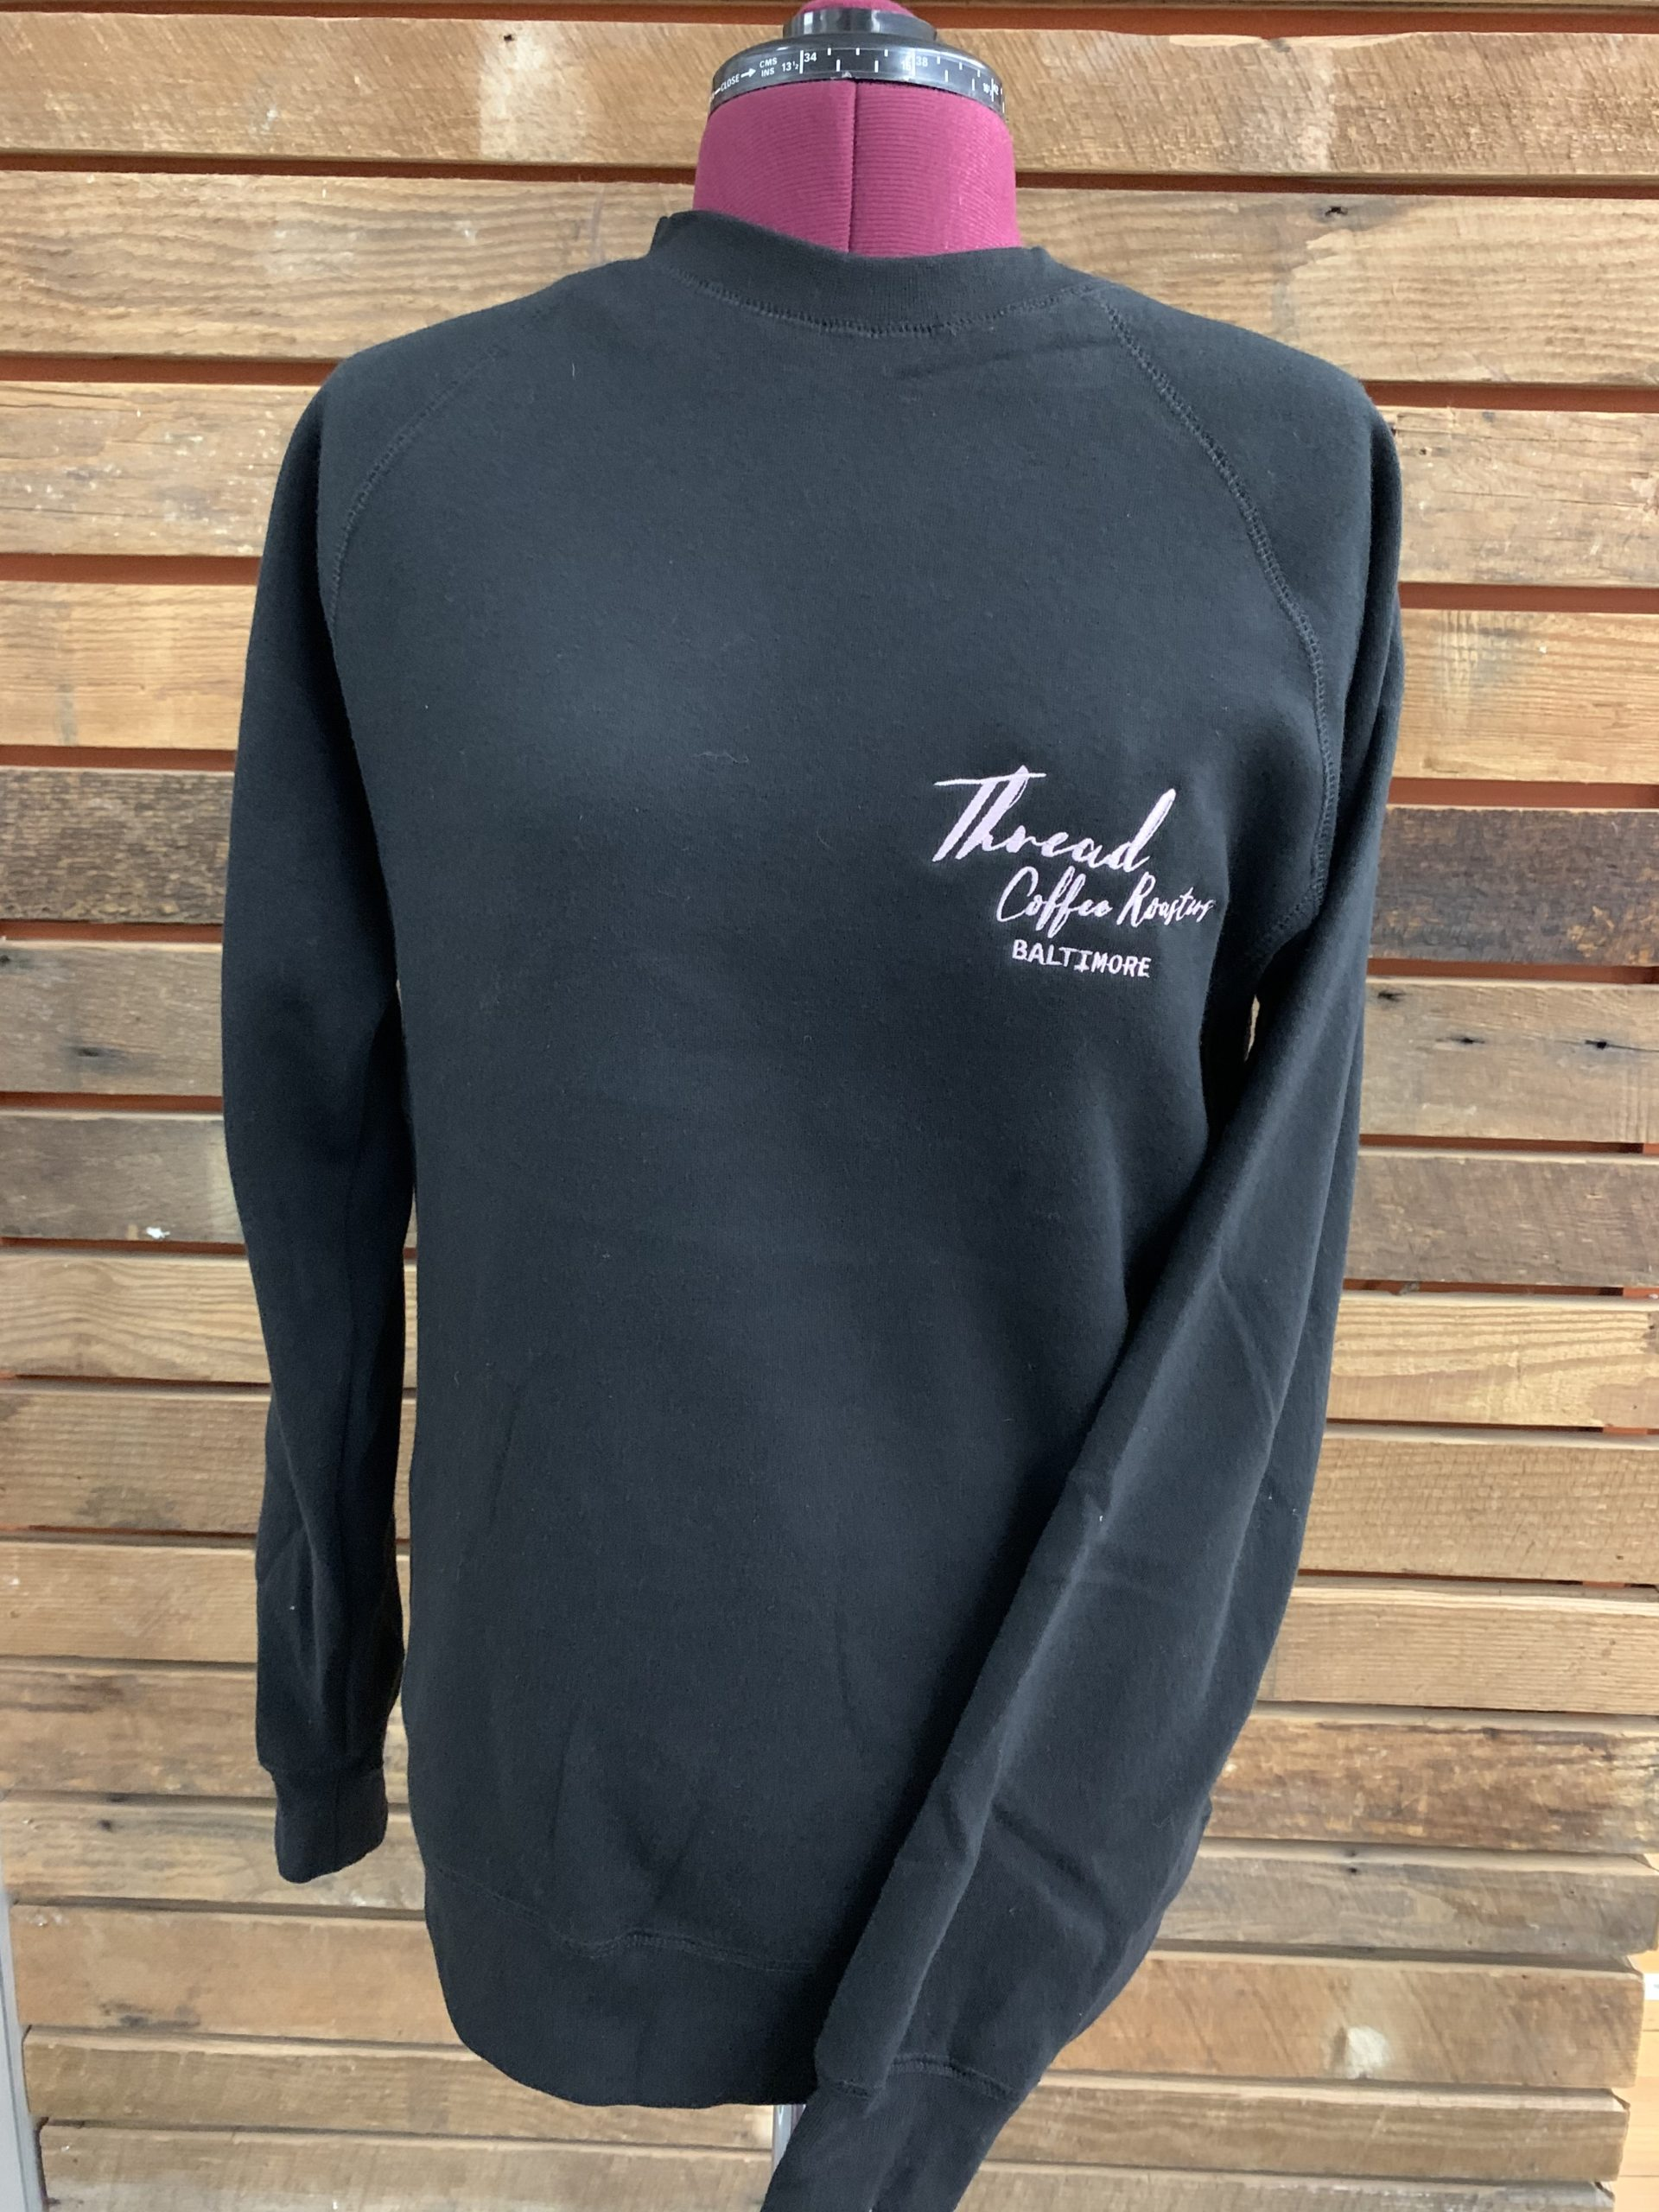 Thread Coffee Roasters - Soft Black and Pink Embroidered Crew Neck Sweatshirt